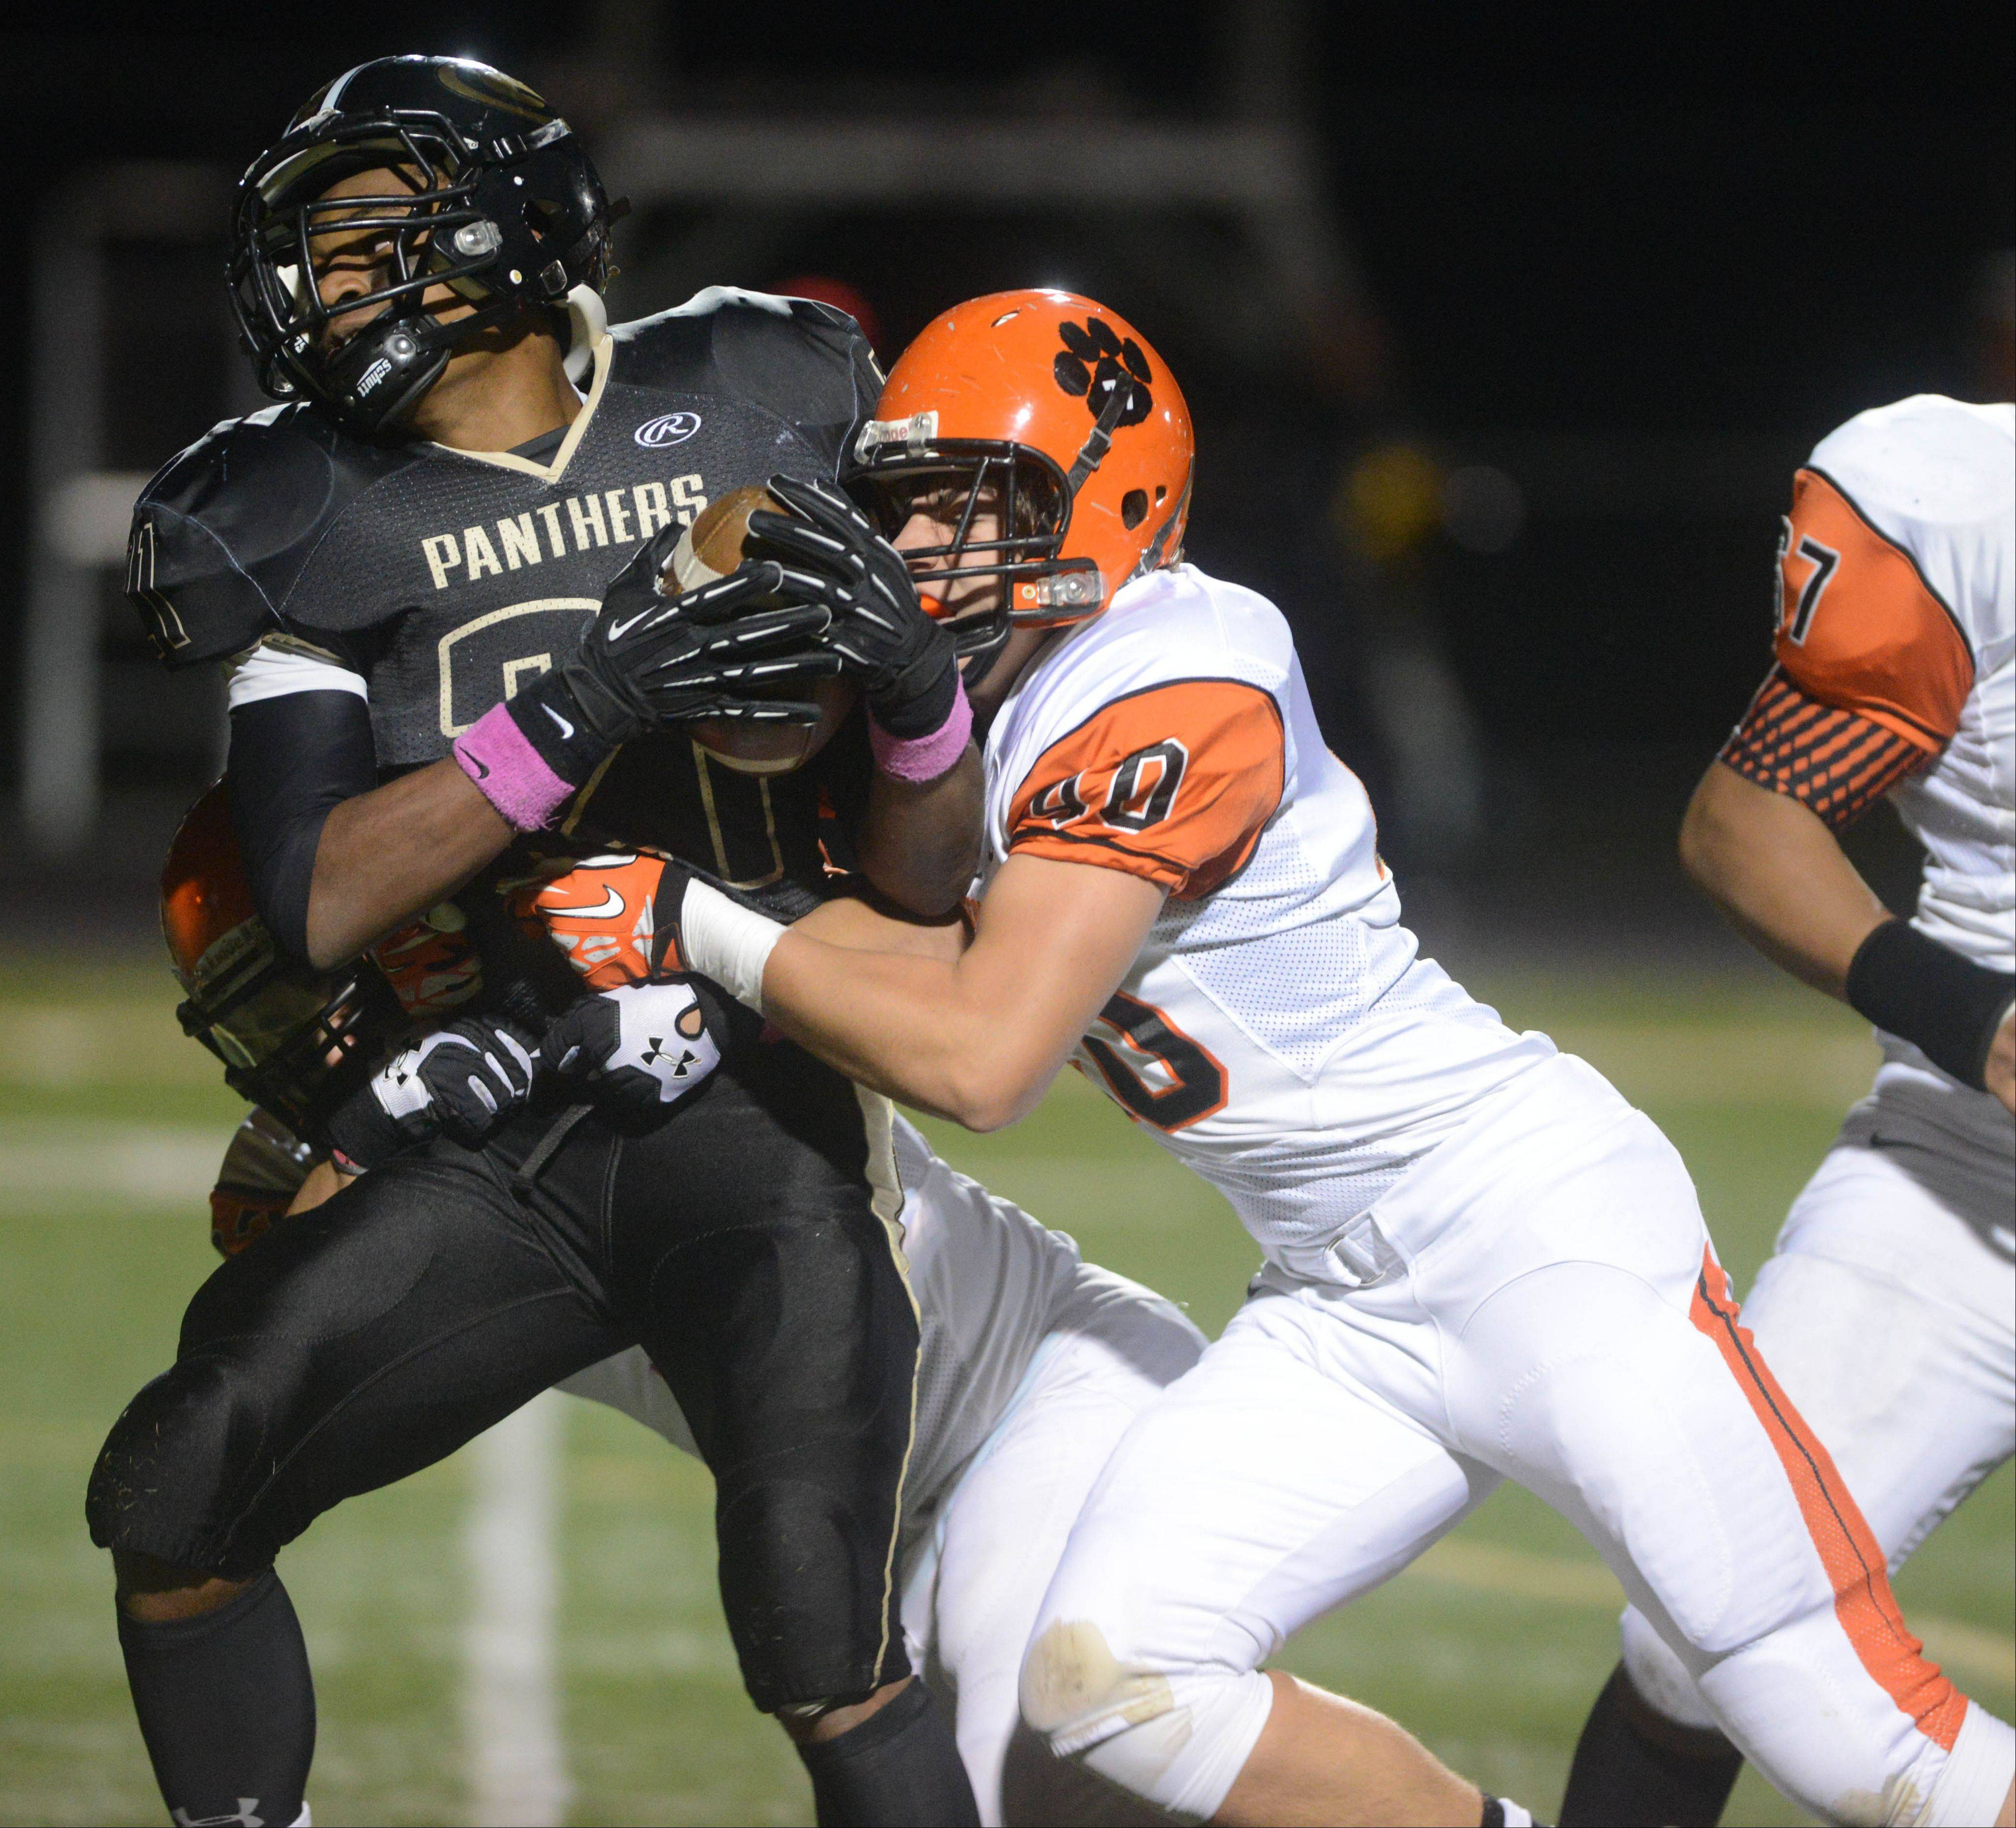 Justin Jackson of Glenbard North is pulled down by Tommy Vitale of Wheaton Warrenville South.